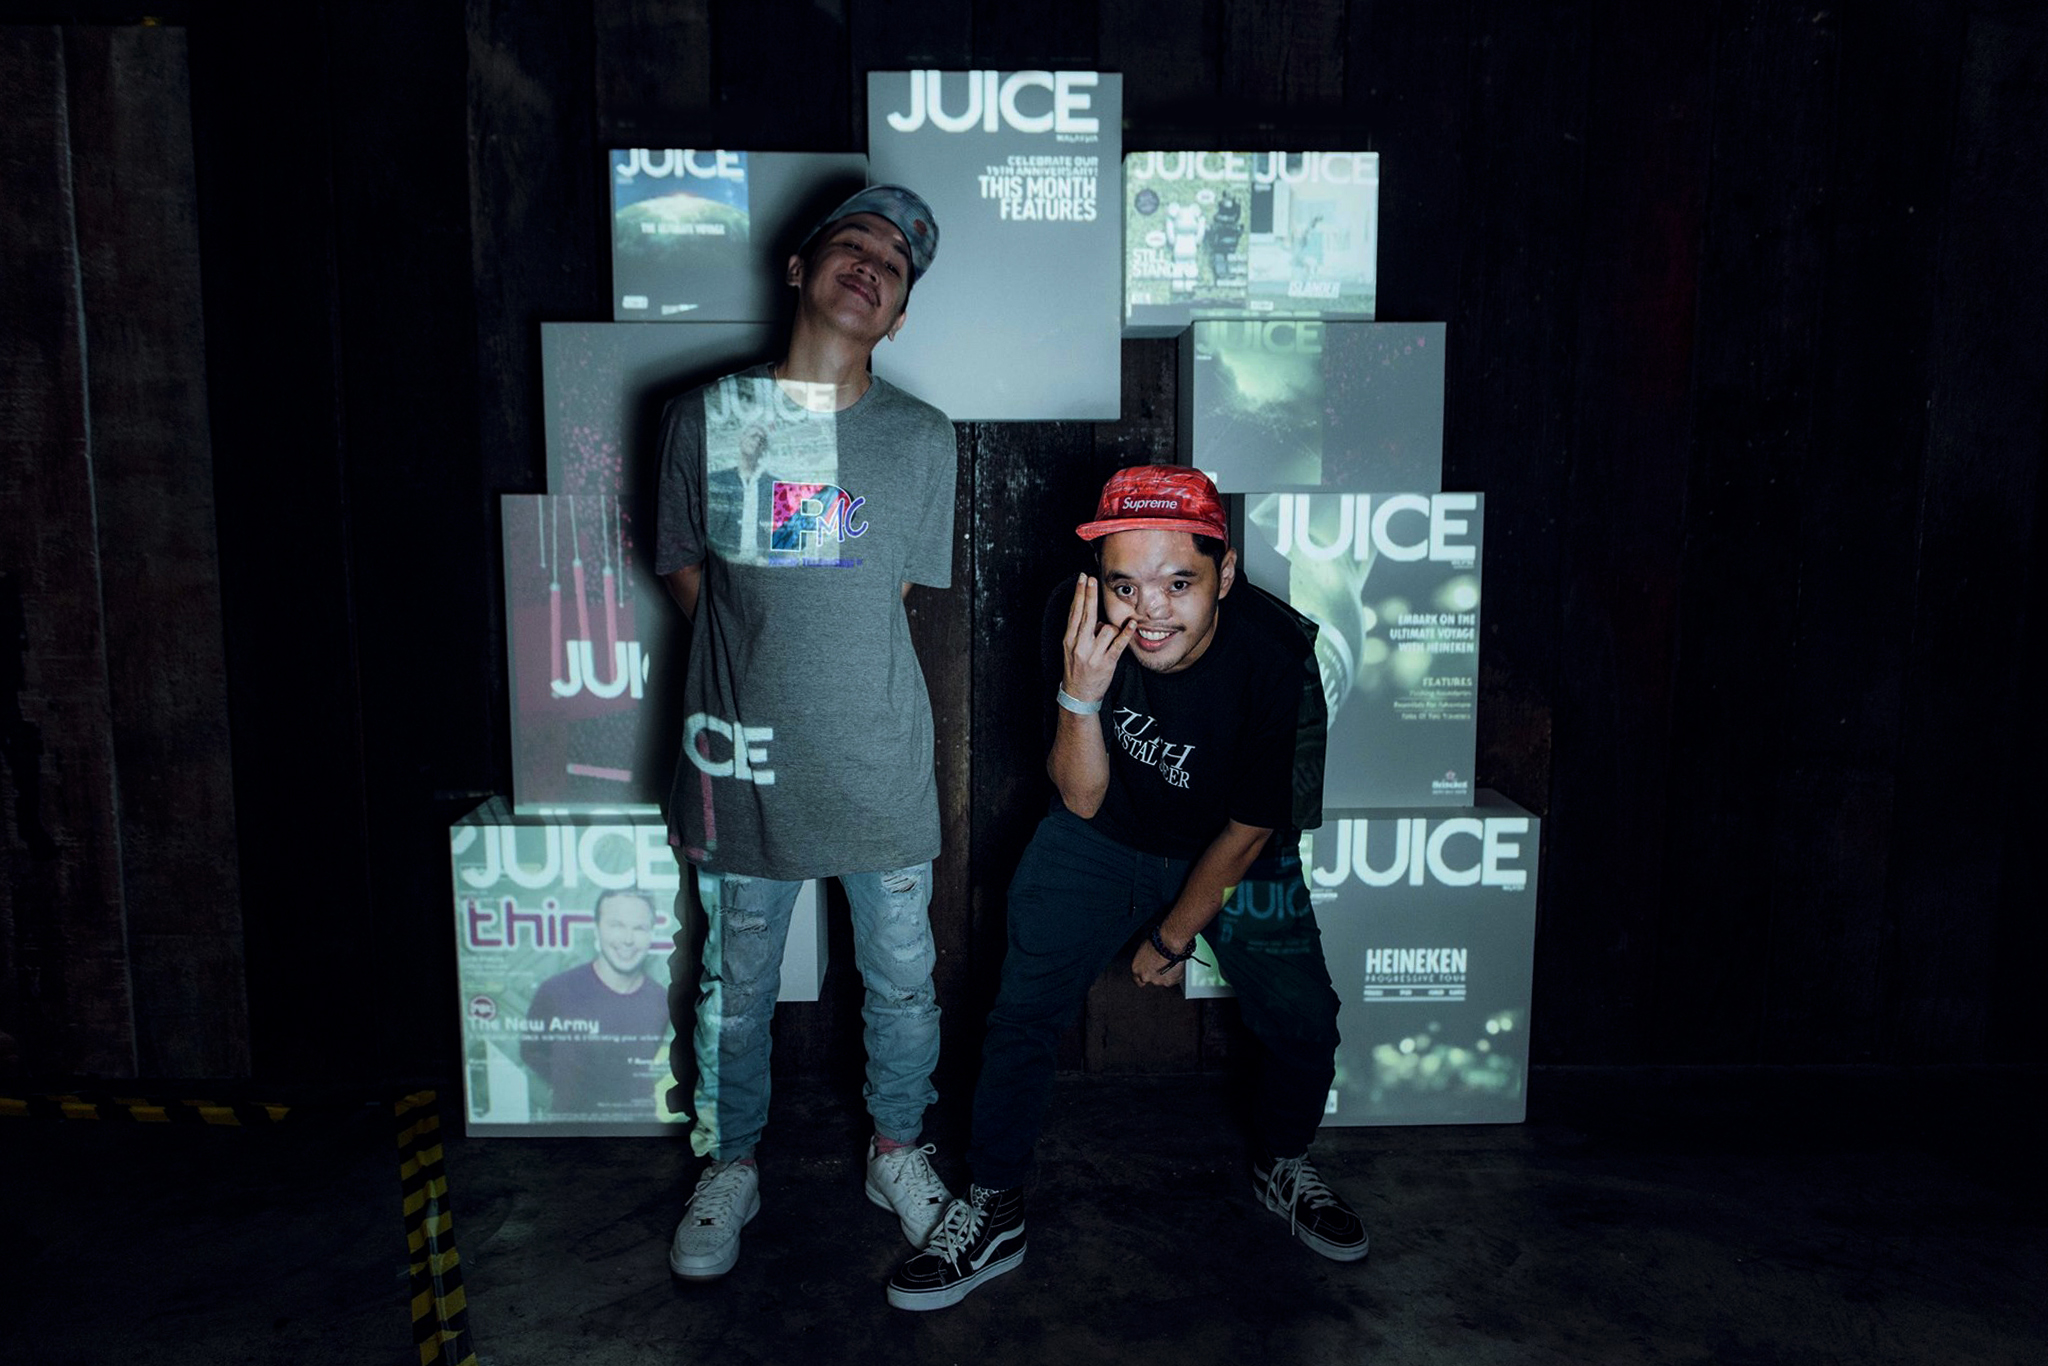 """JUICE Feature"" Photowall"